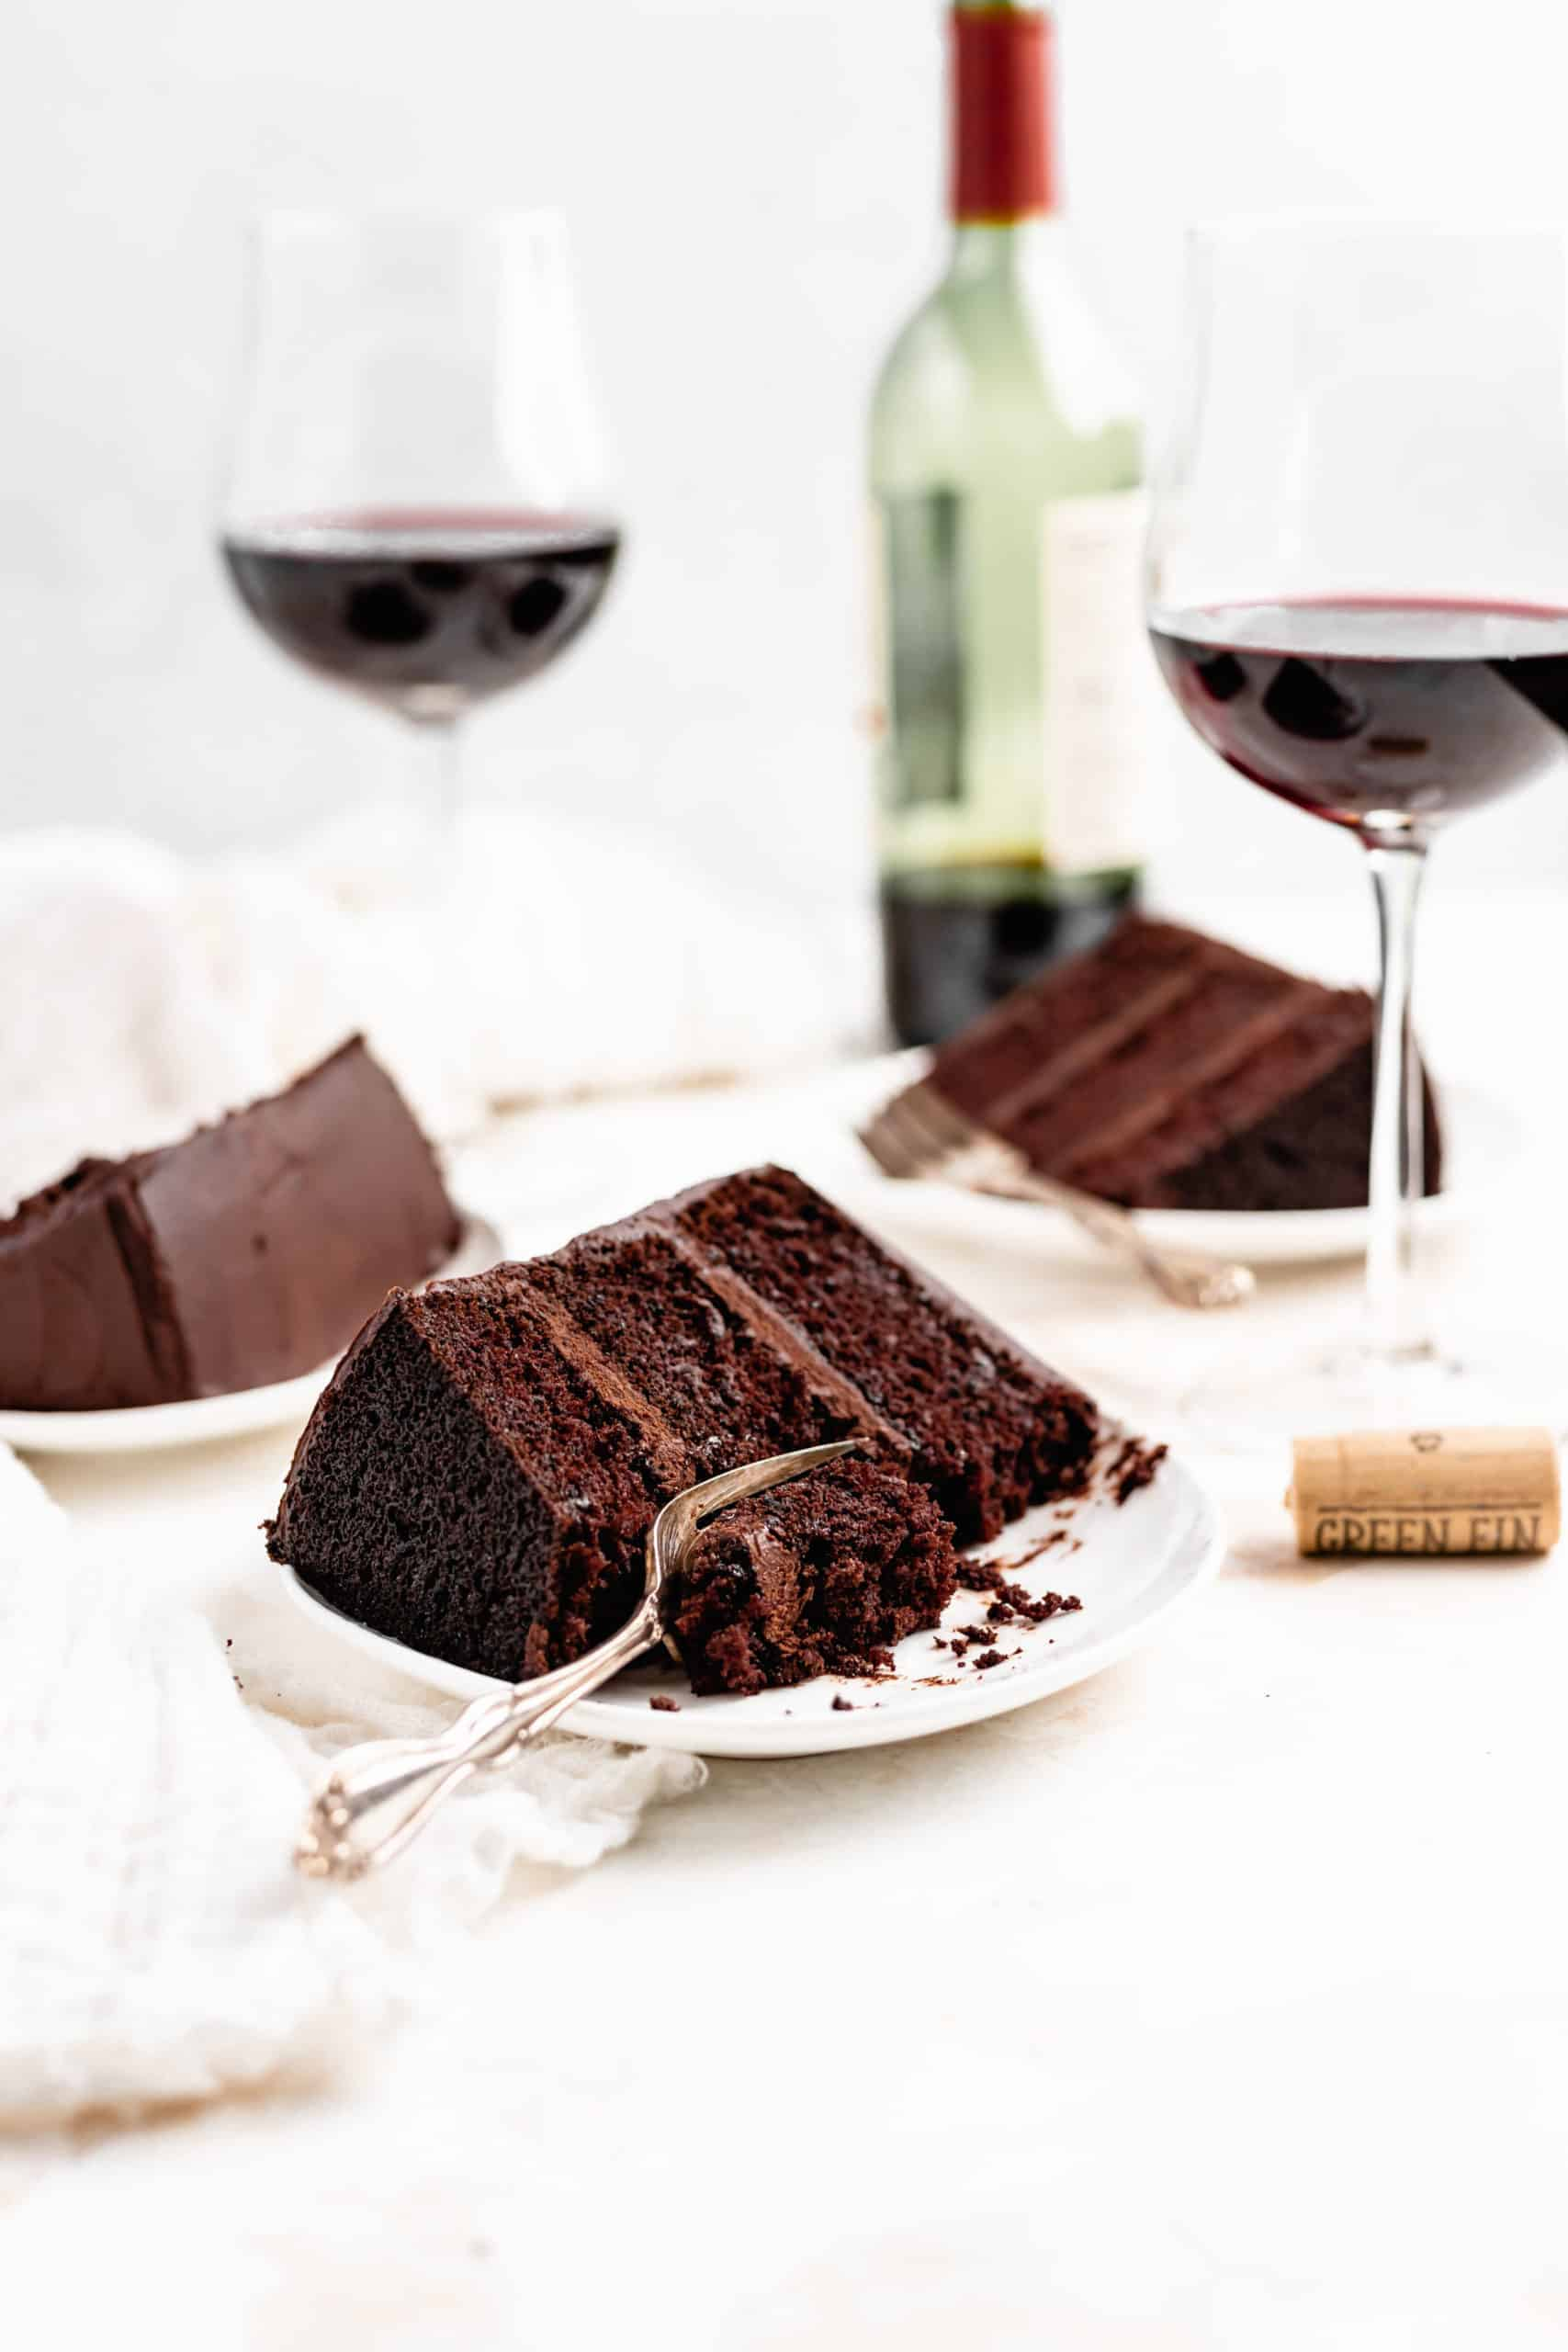 red wine chocolate cake slices on plates